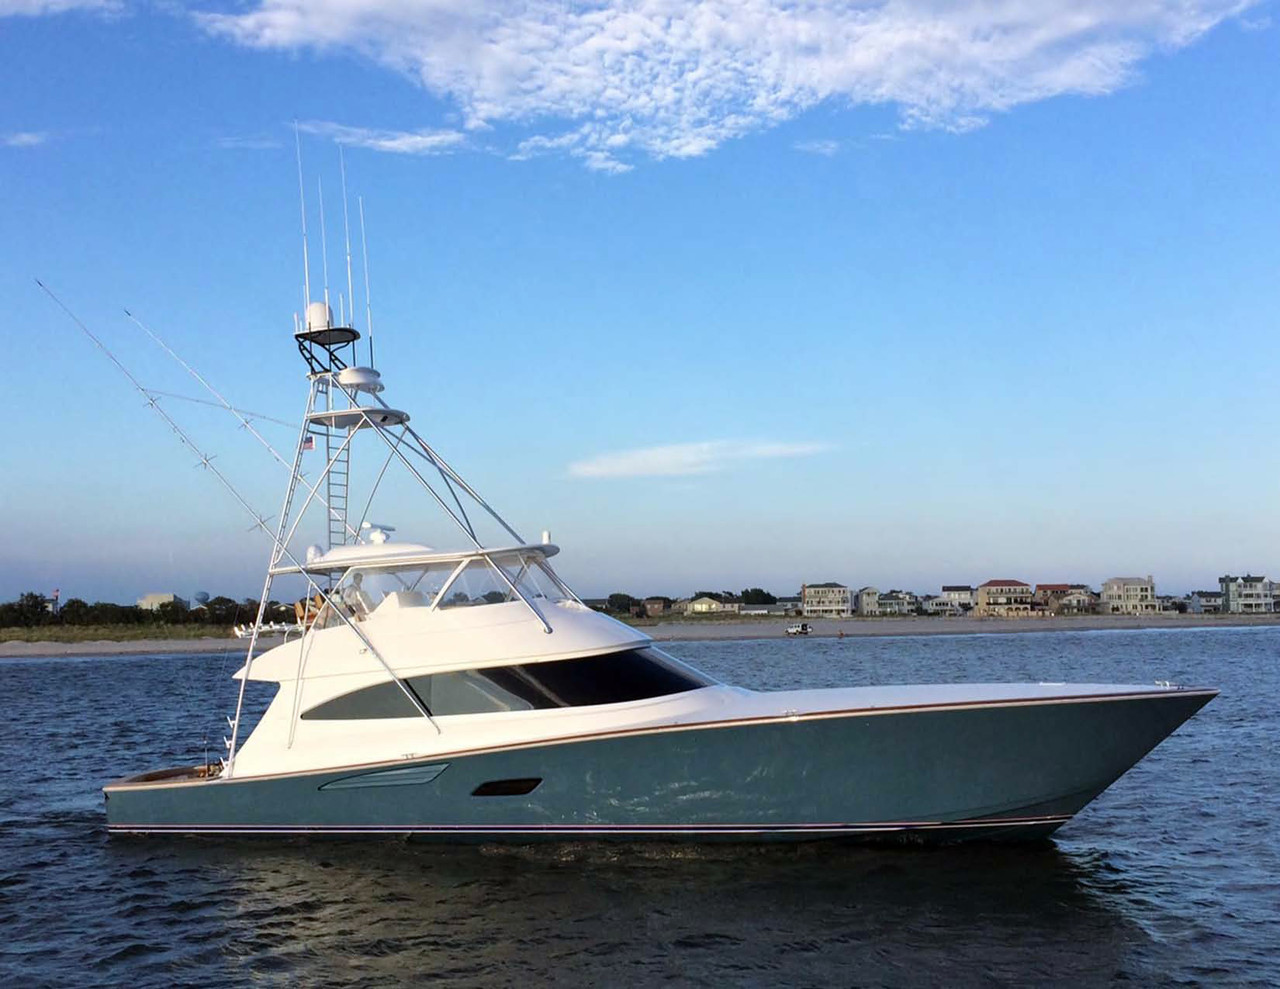 2018 new viking convertible fishing boat for sale north for Viking fishing boat